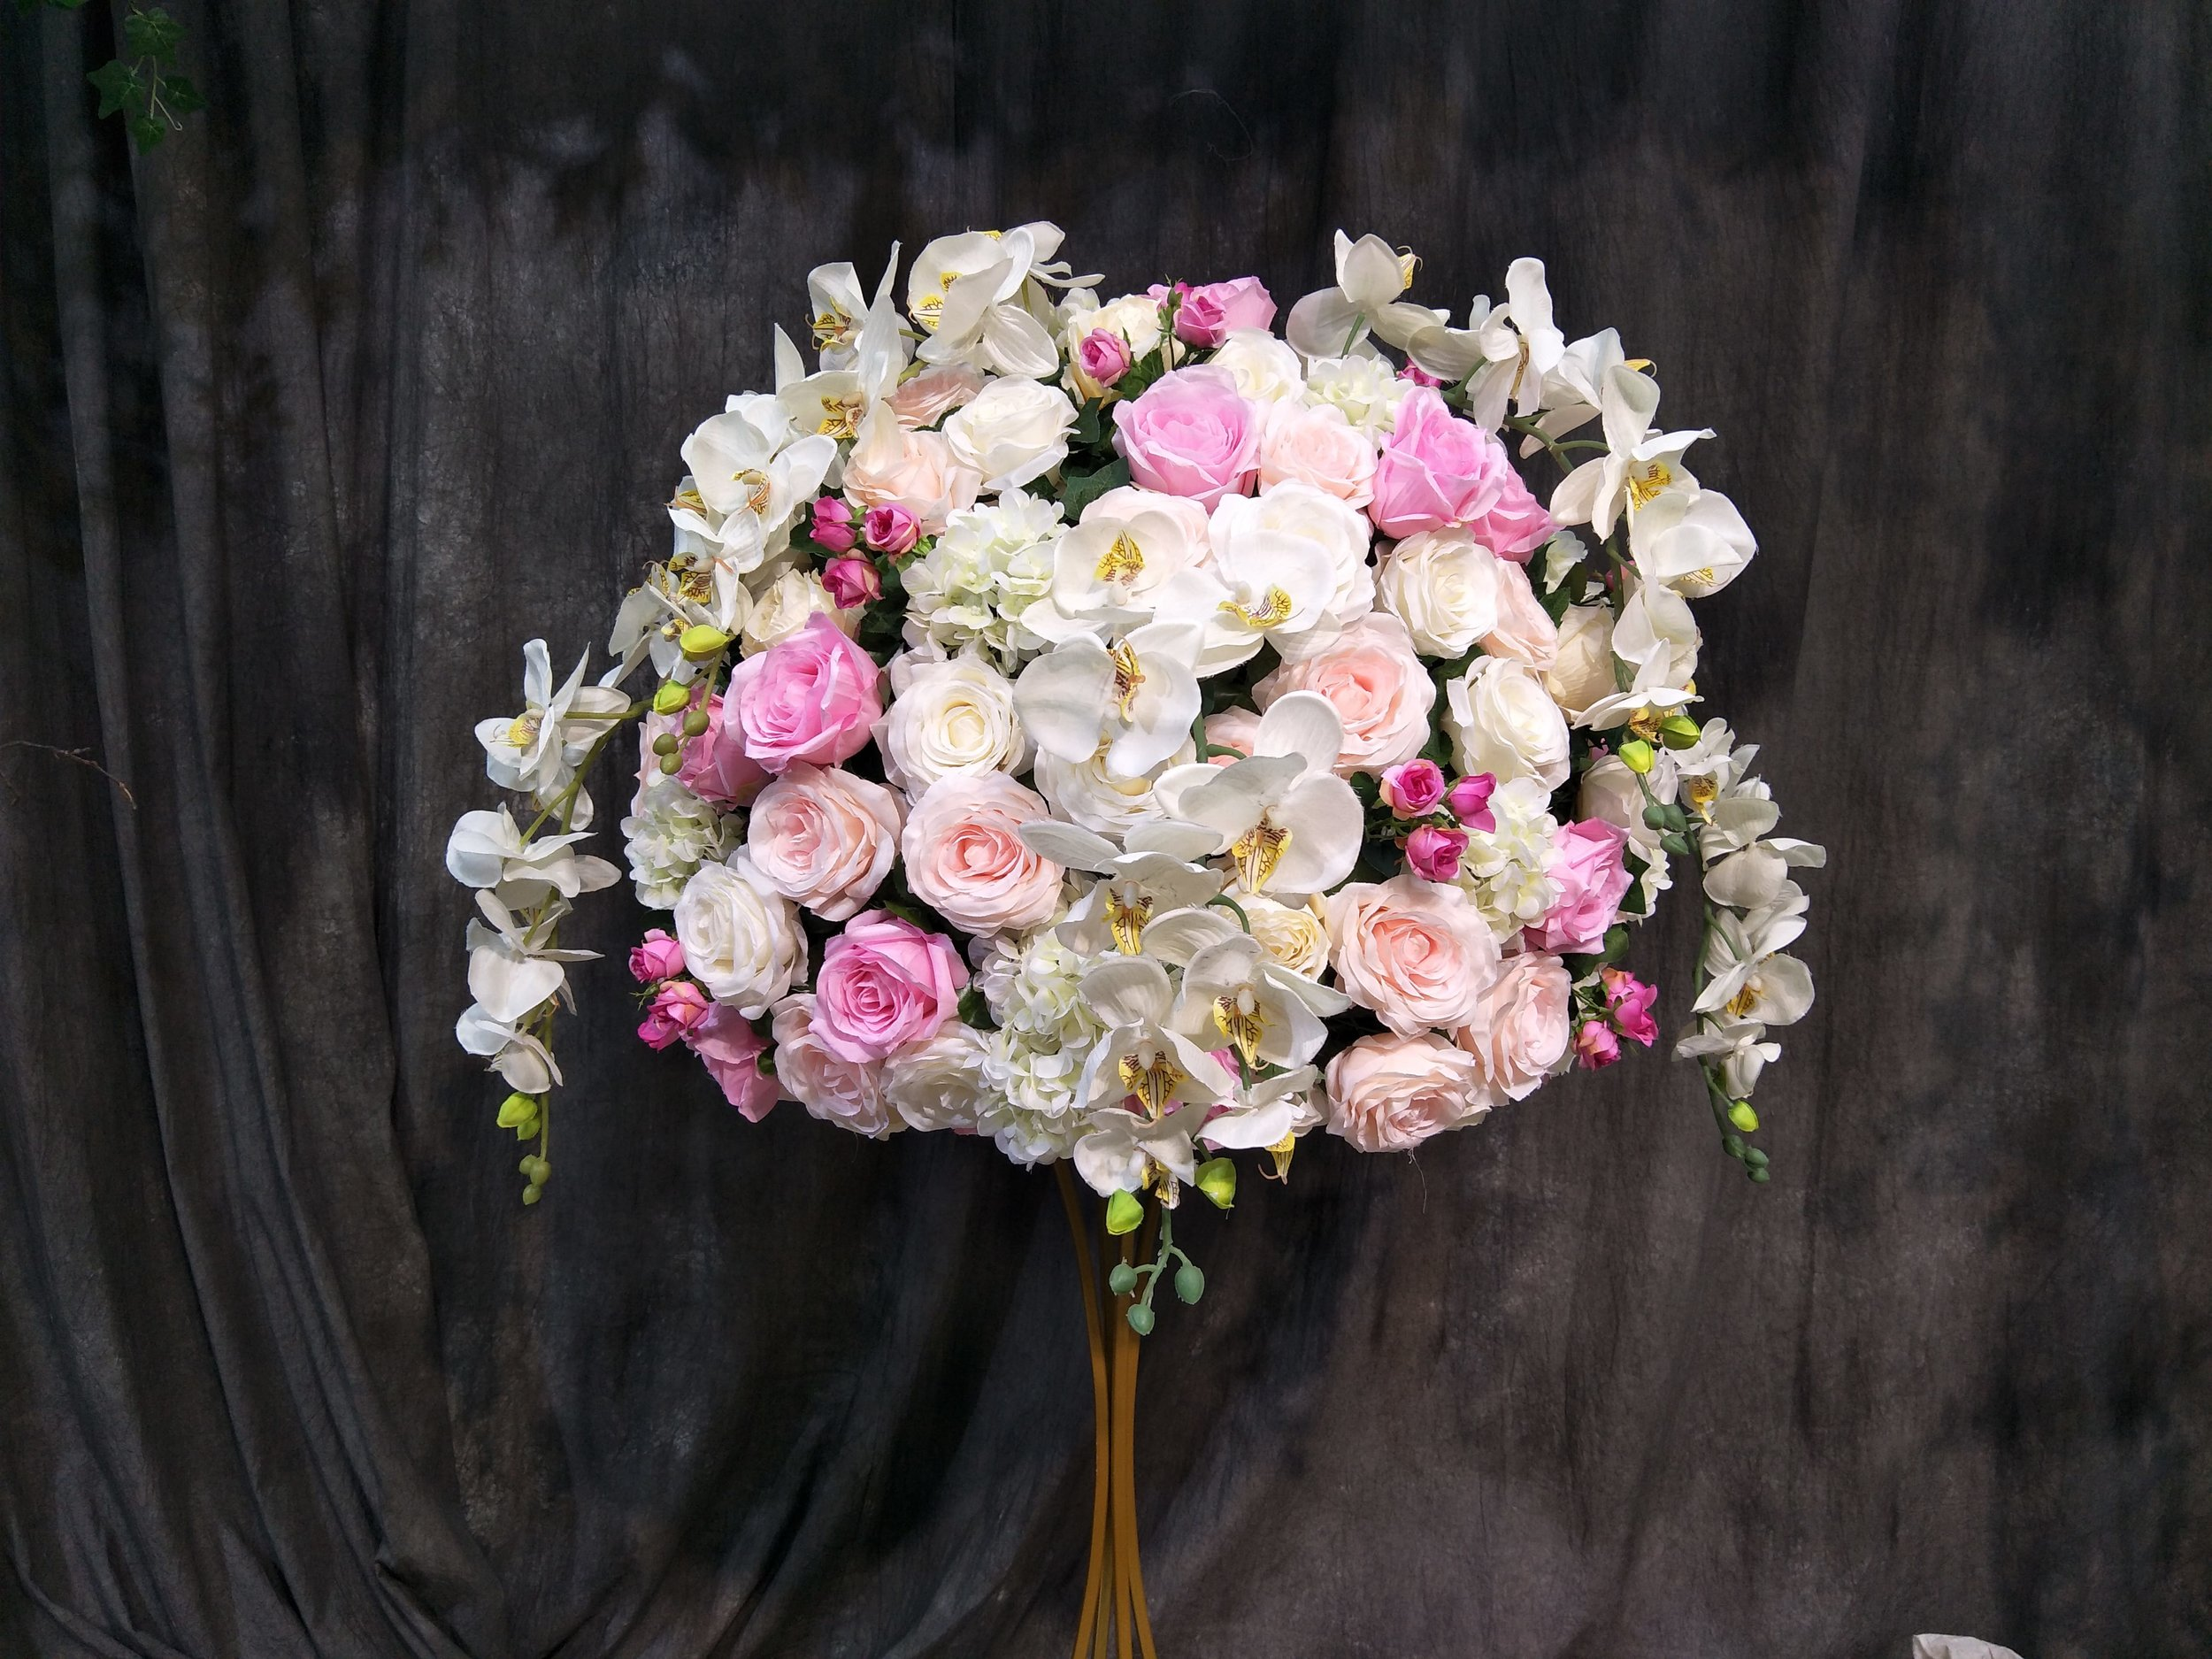 70cm Silk Floral Centrepiece White and Blush Pink